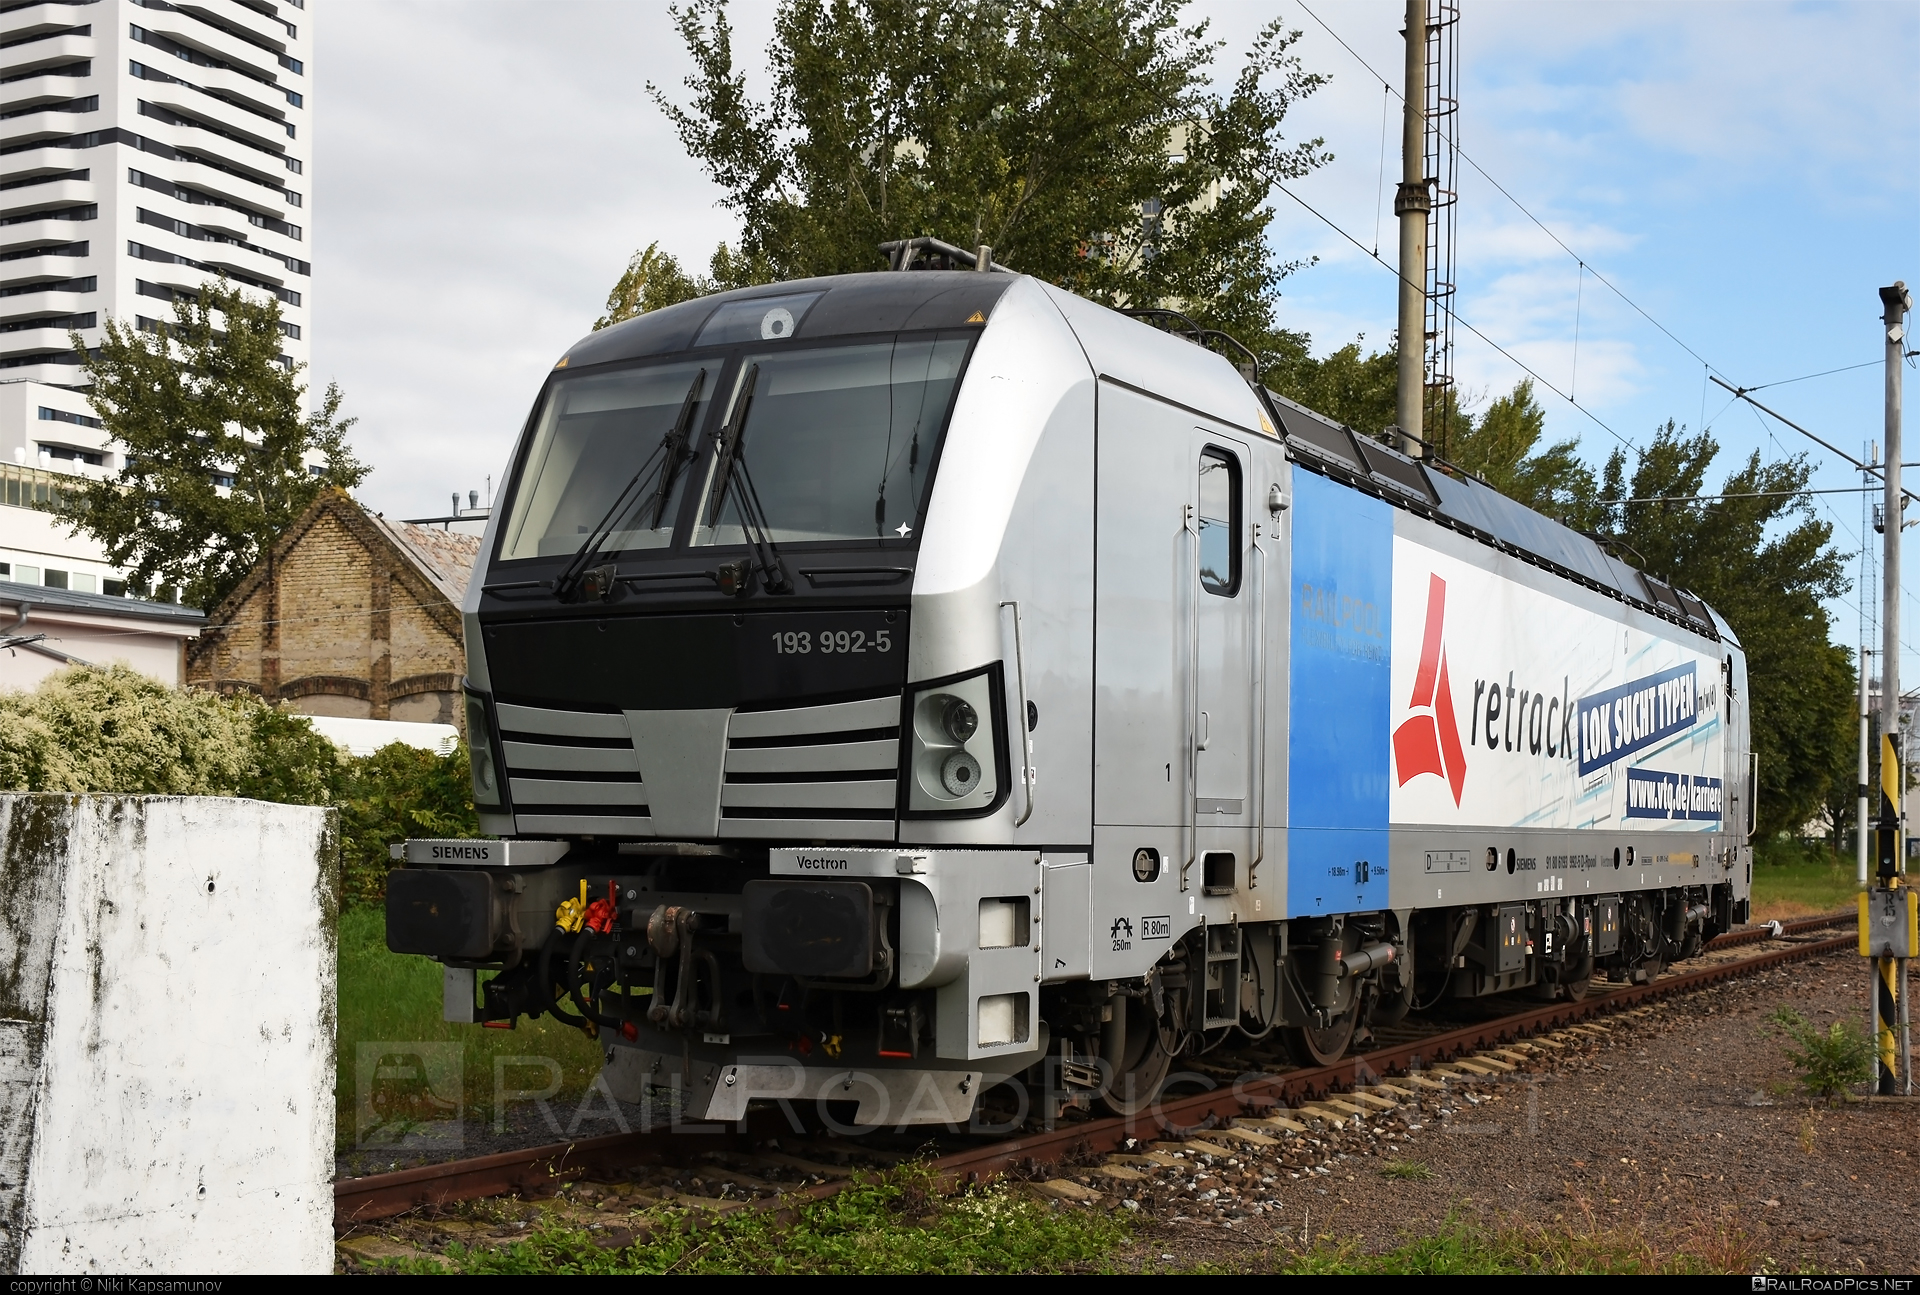 Siemens Vectron AC - 193 992-5 operated by Retrack GmbH & Co. KG #railpool #railpoolgmbh #retrack #retrackgmbh #siemens #siemensvectron #siemensvectronac #vectron #vectronac